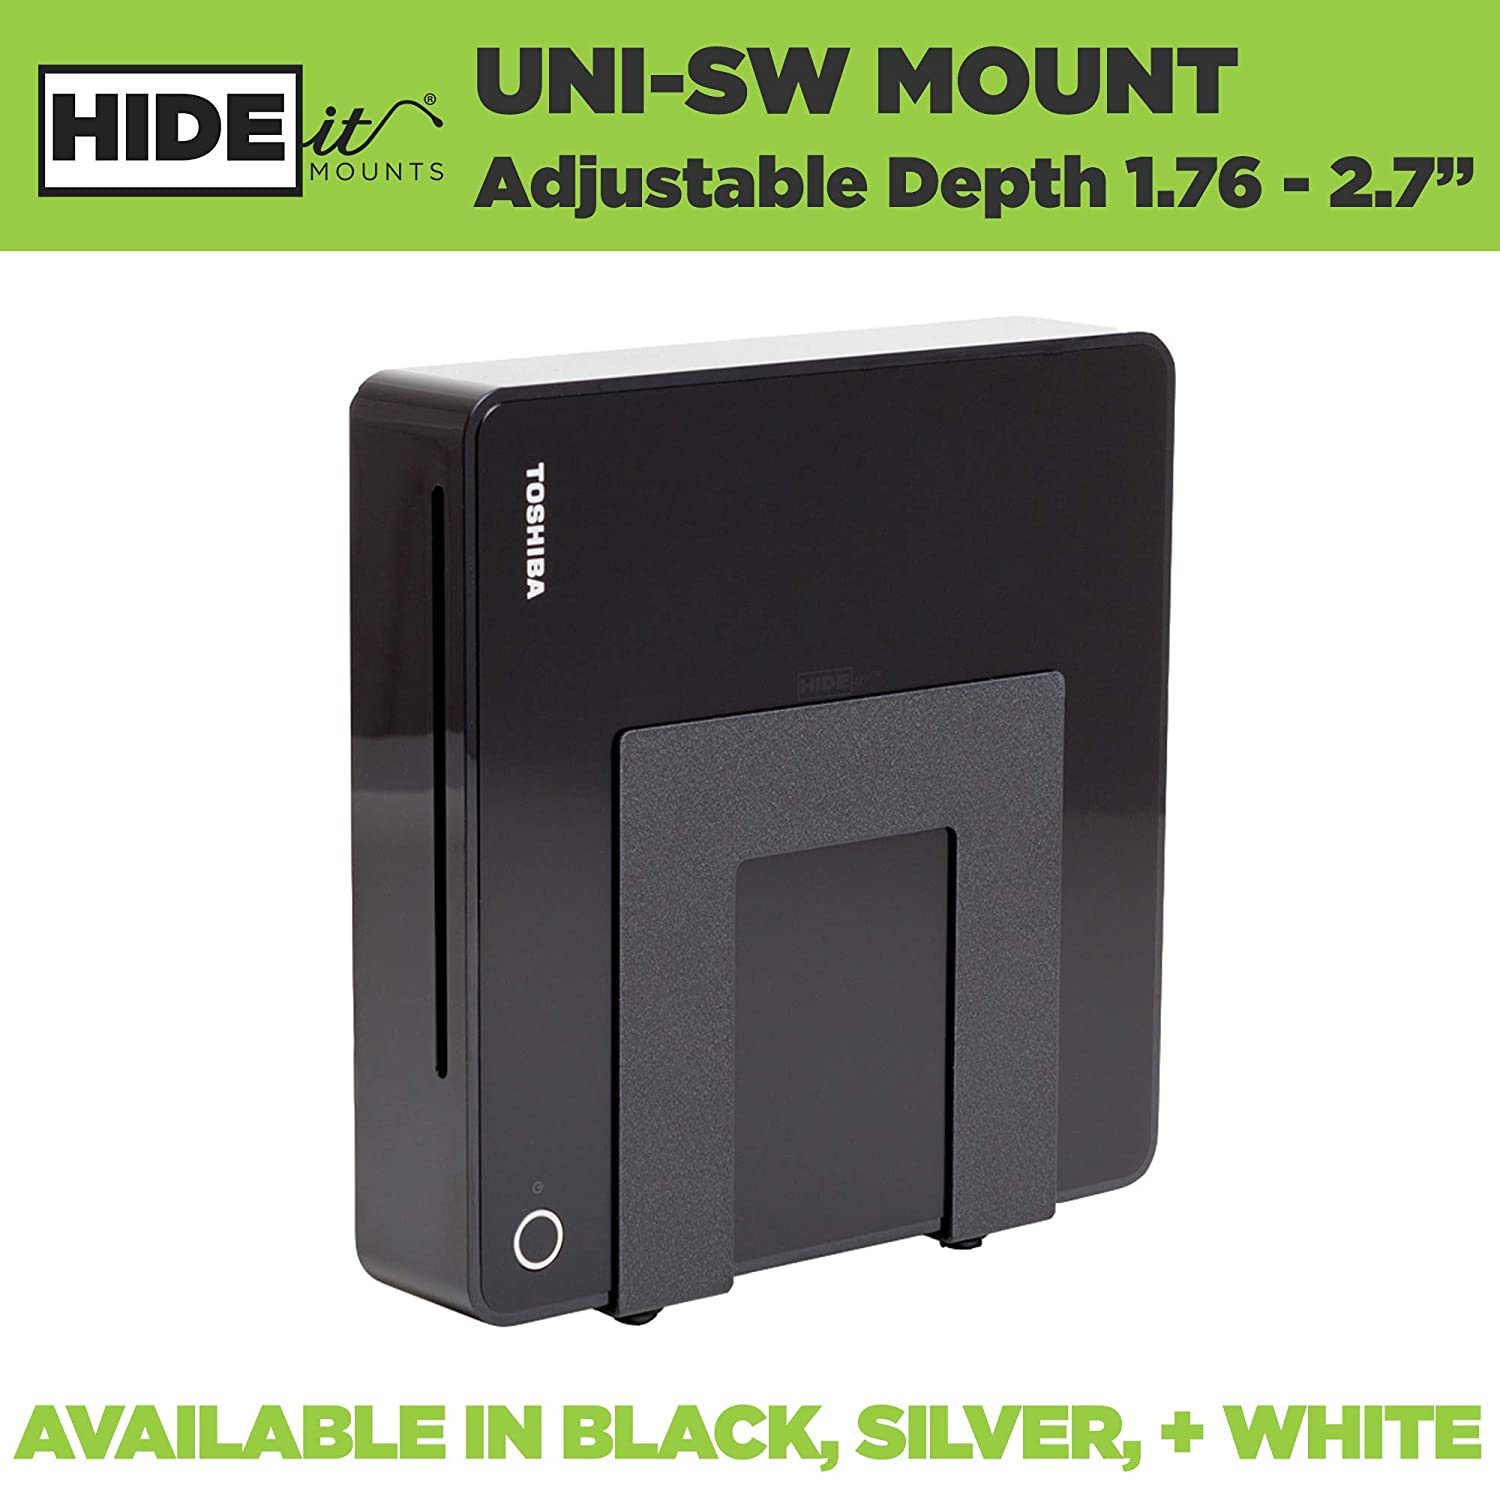 HIDEit Uni-SW (Black) Adjustable Small Device Wall Mount, Wii, Cable Box,  DVD Player